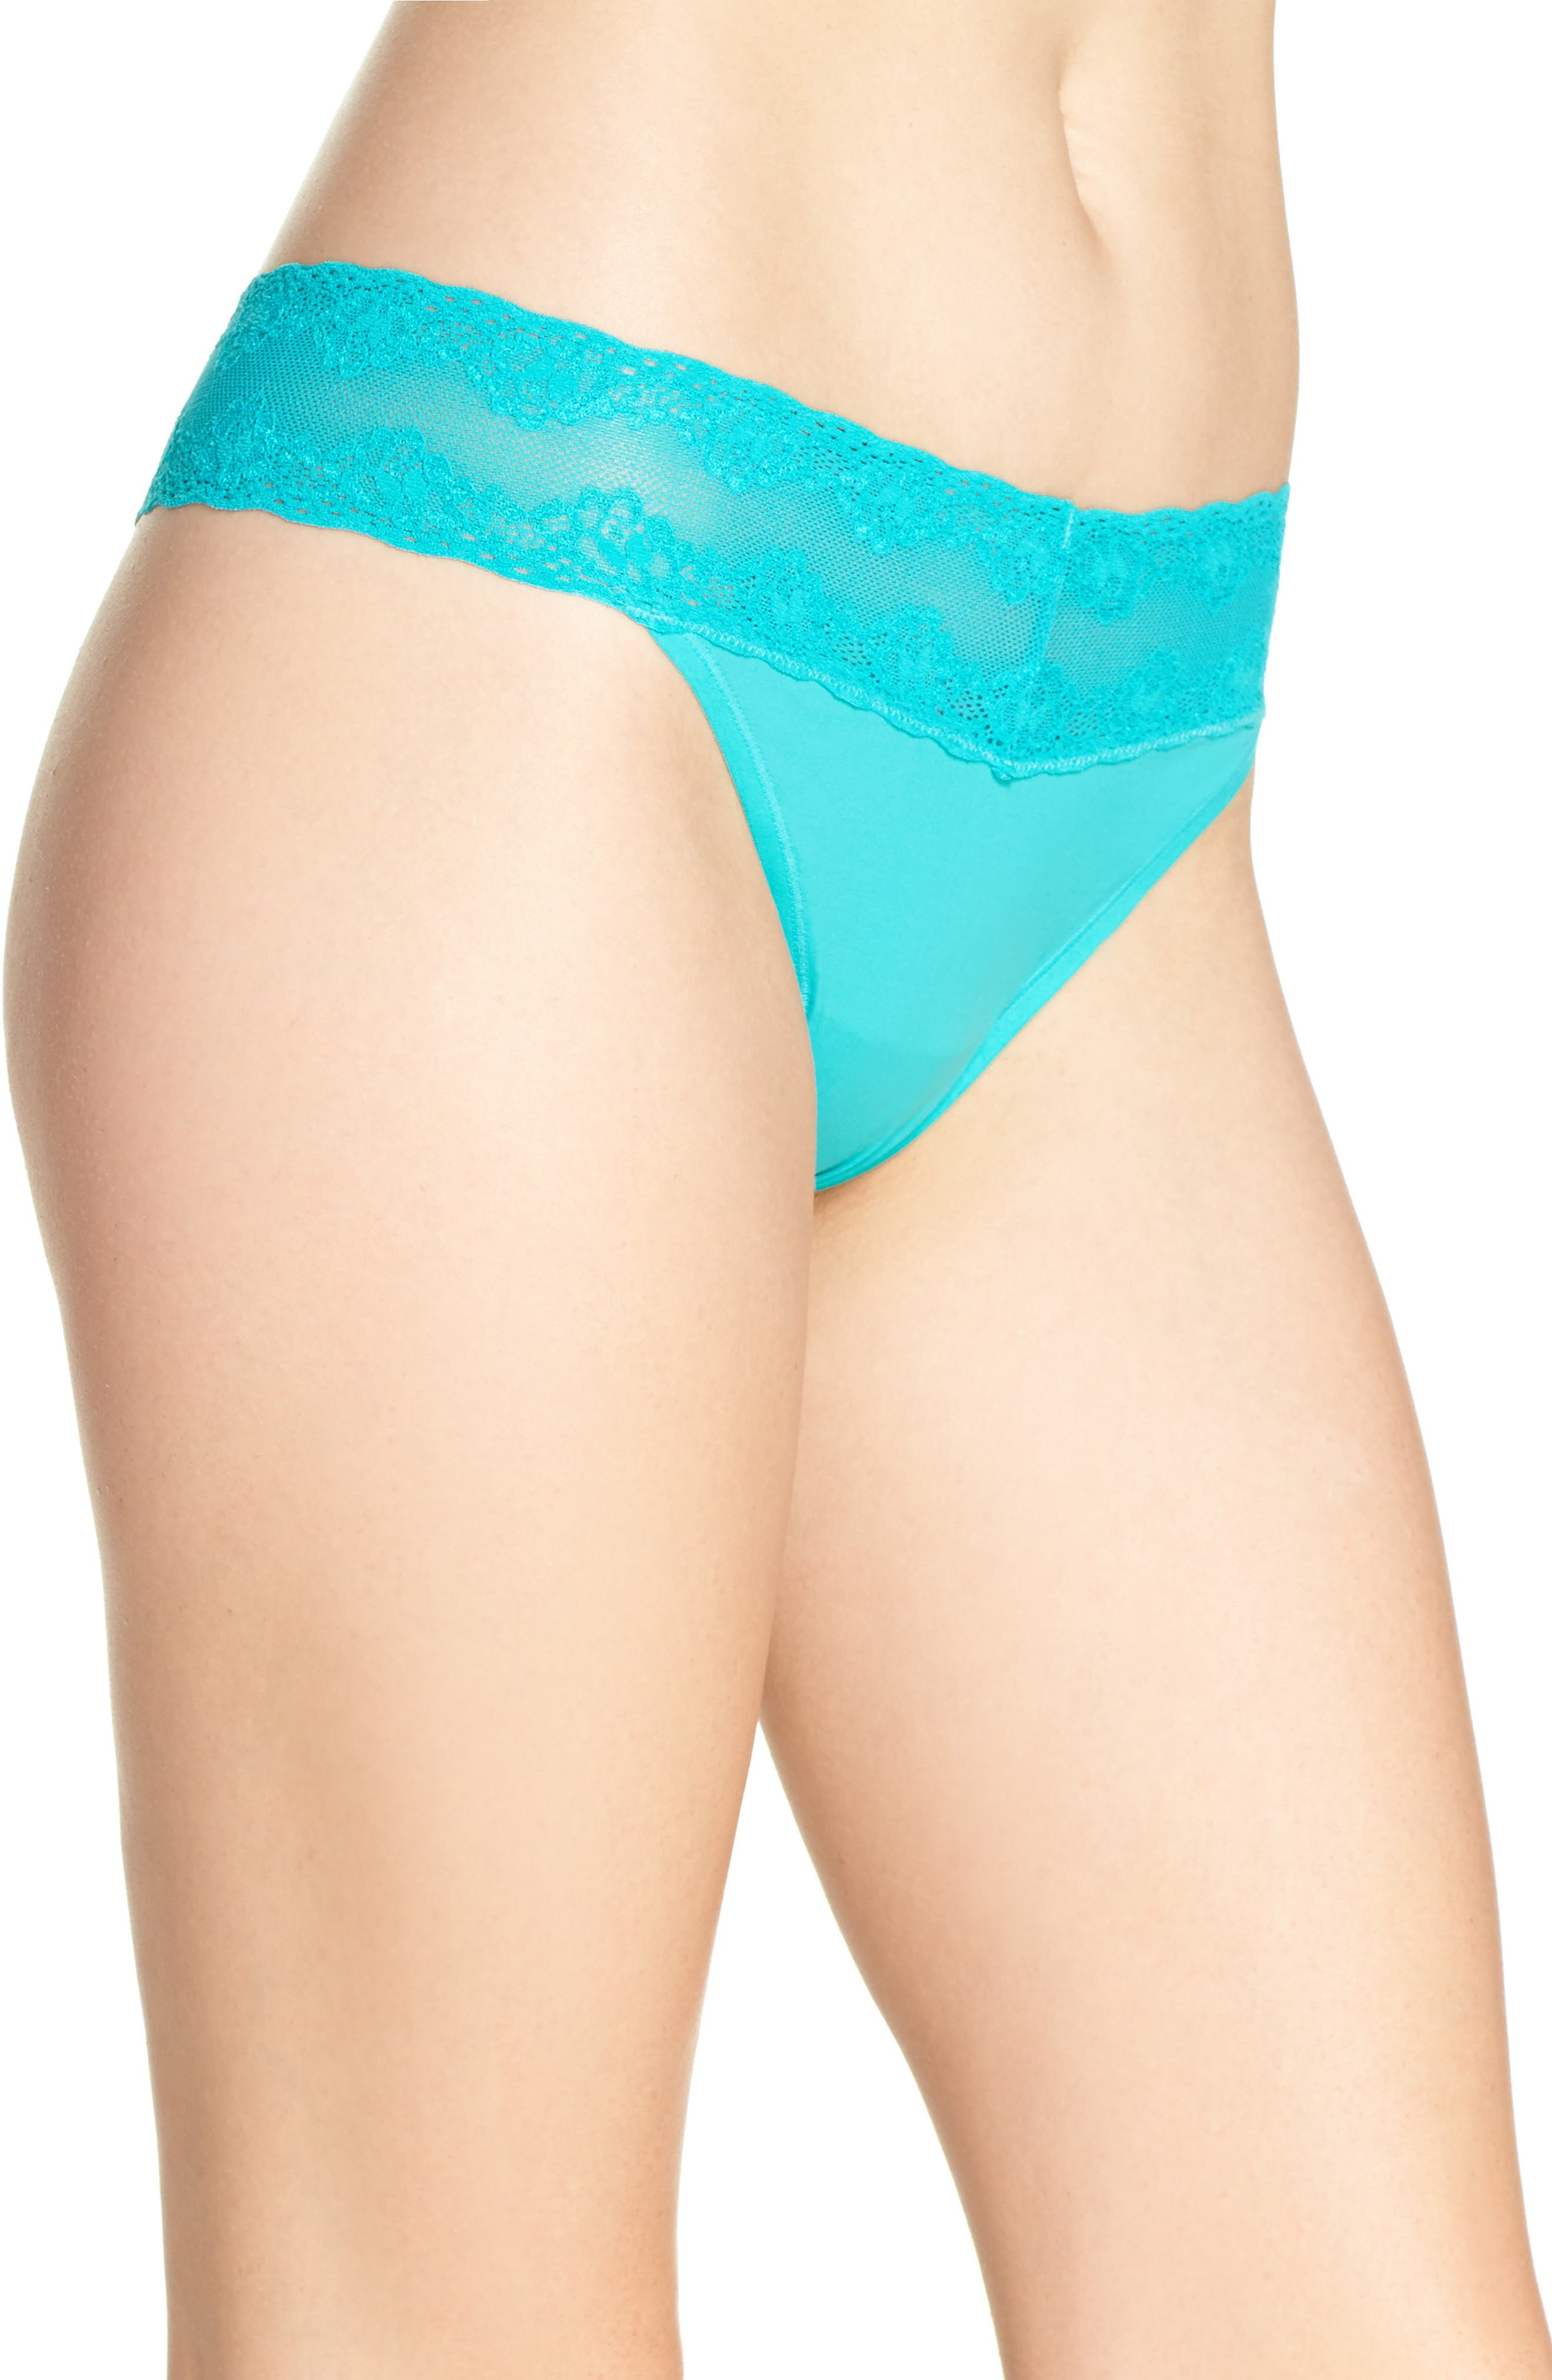 Bliss Perfection Thong,                             Alternate thumbnail 265, color,